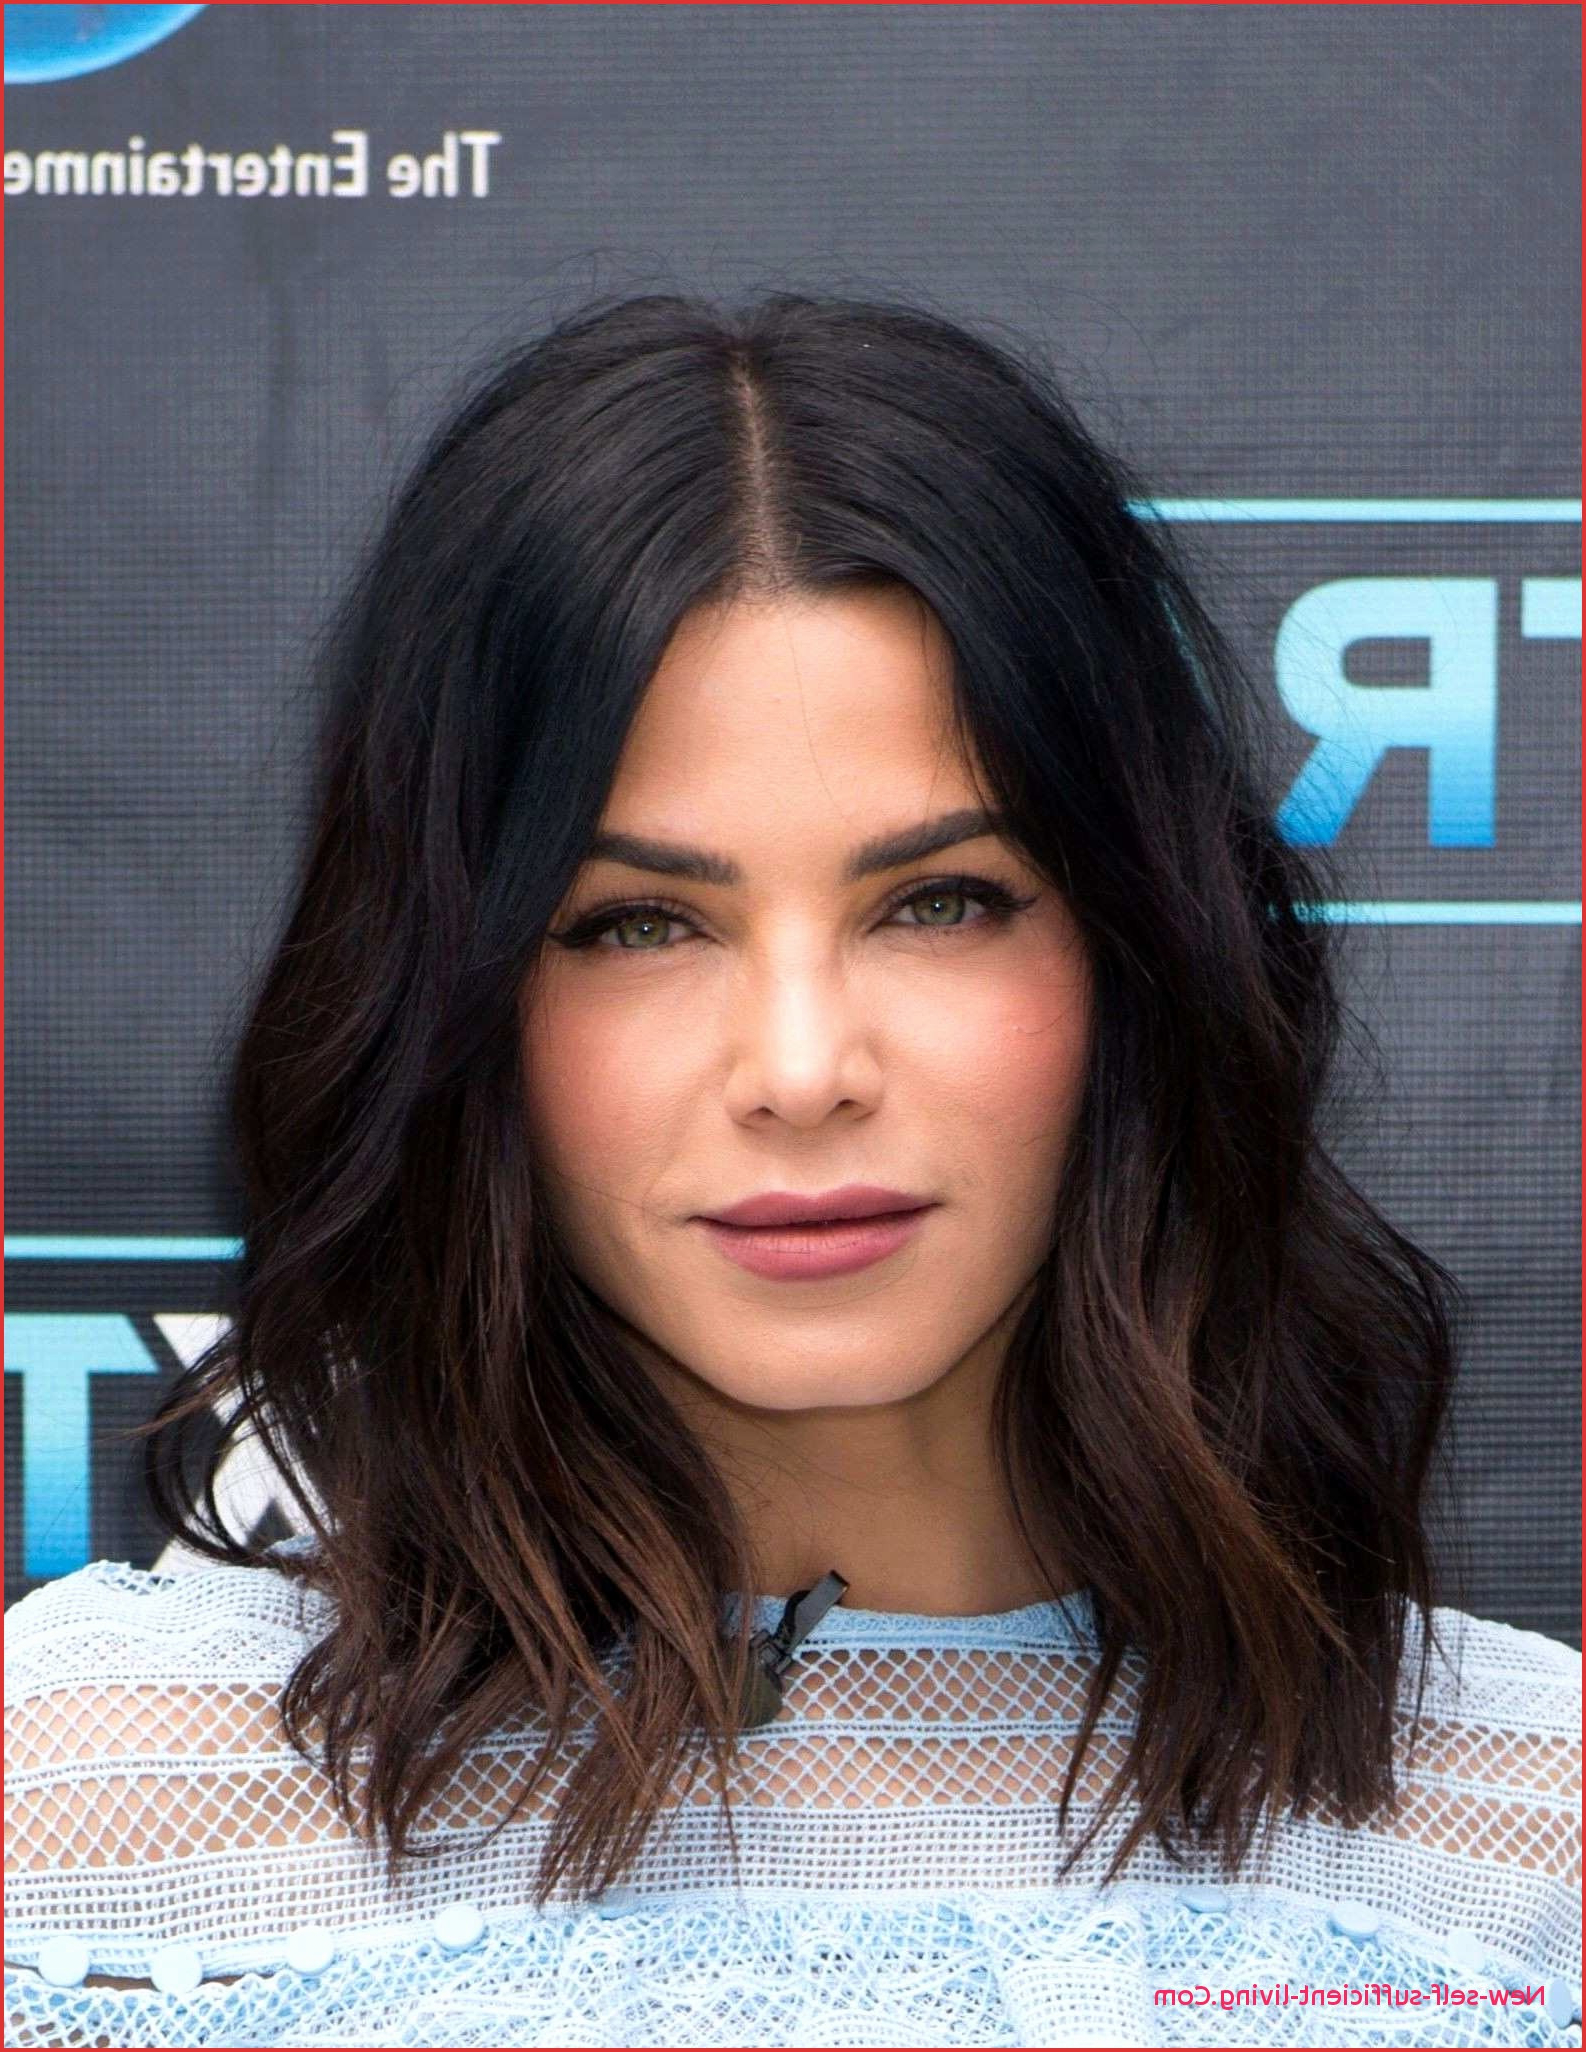 Hairstyles : Choppy Layered Long Haircuts Choppy Layered' Hairstyless For Trendy Long Choppy Haircuts With A Sprinkling Of Layers (View 12 of 20)